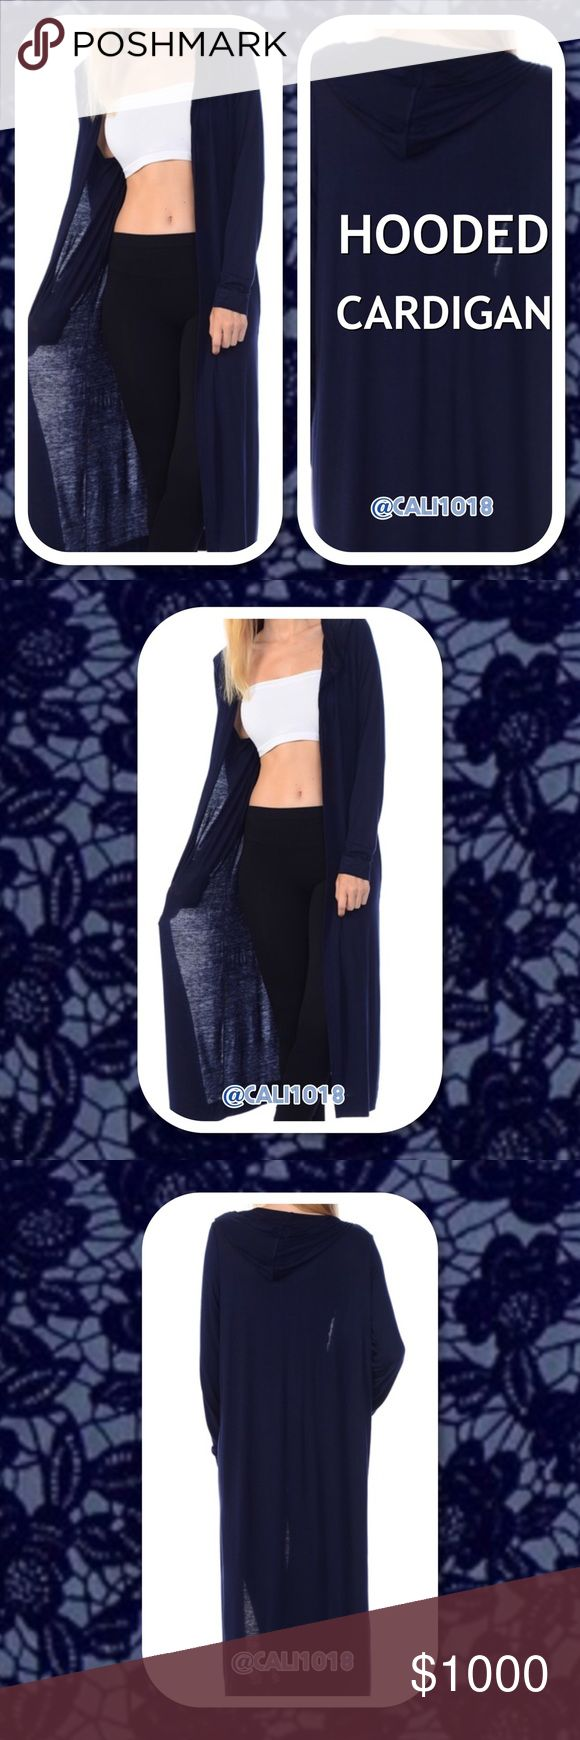 🆕 Navy Midi Length Hooded Duster Cardigan New Missy Hooded Duster Maxi/Midi Length Lightweight Open Cardigan   Color: Navy  Made in USA  Size: Medium, Large, XLarge   Fits true to size  Material: 95% Rayon 5% Spandex  Hooded; Perfect transitional lightweight cardigan. Soft and comfy. Glam Squad 2 You Sweaters Cardigans